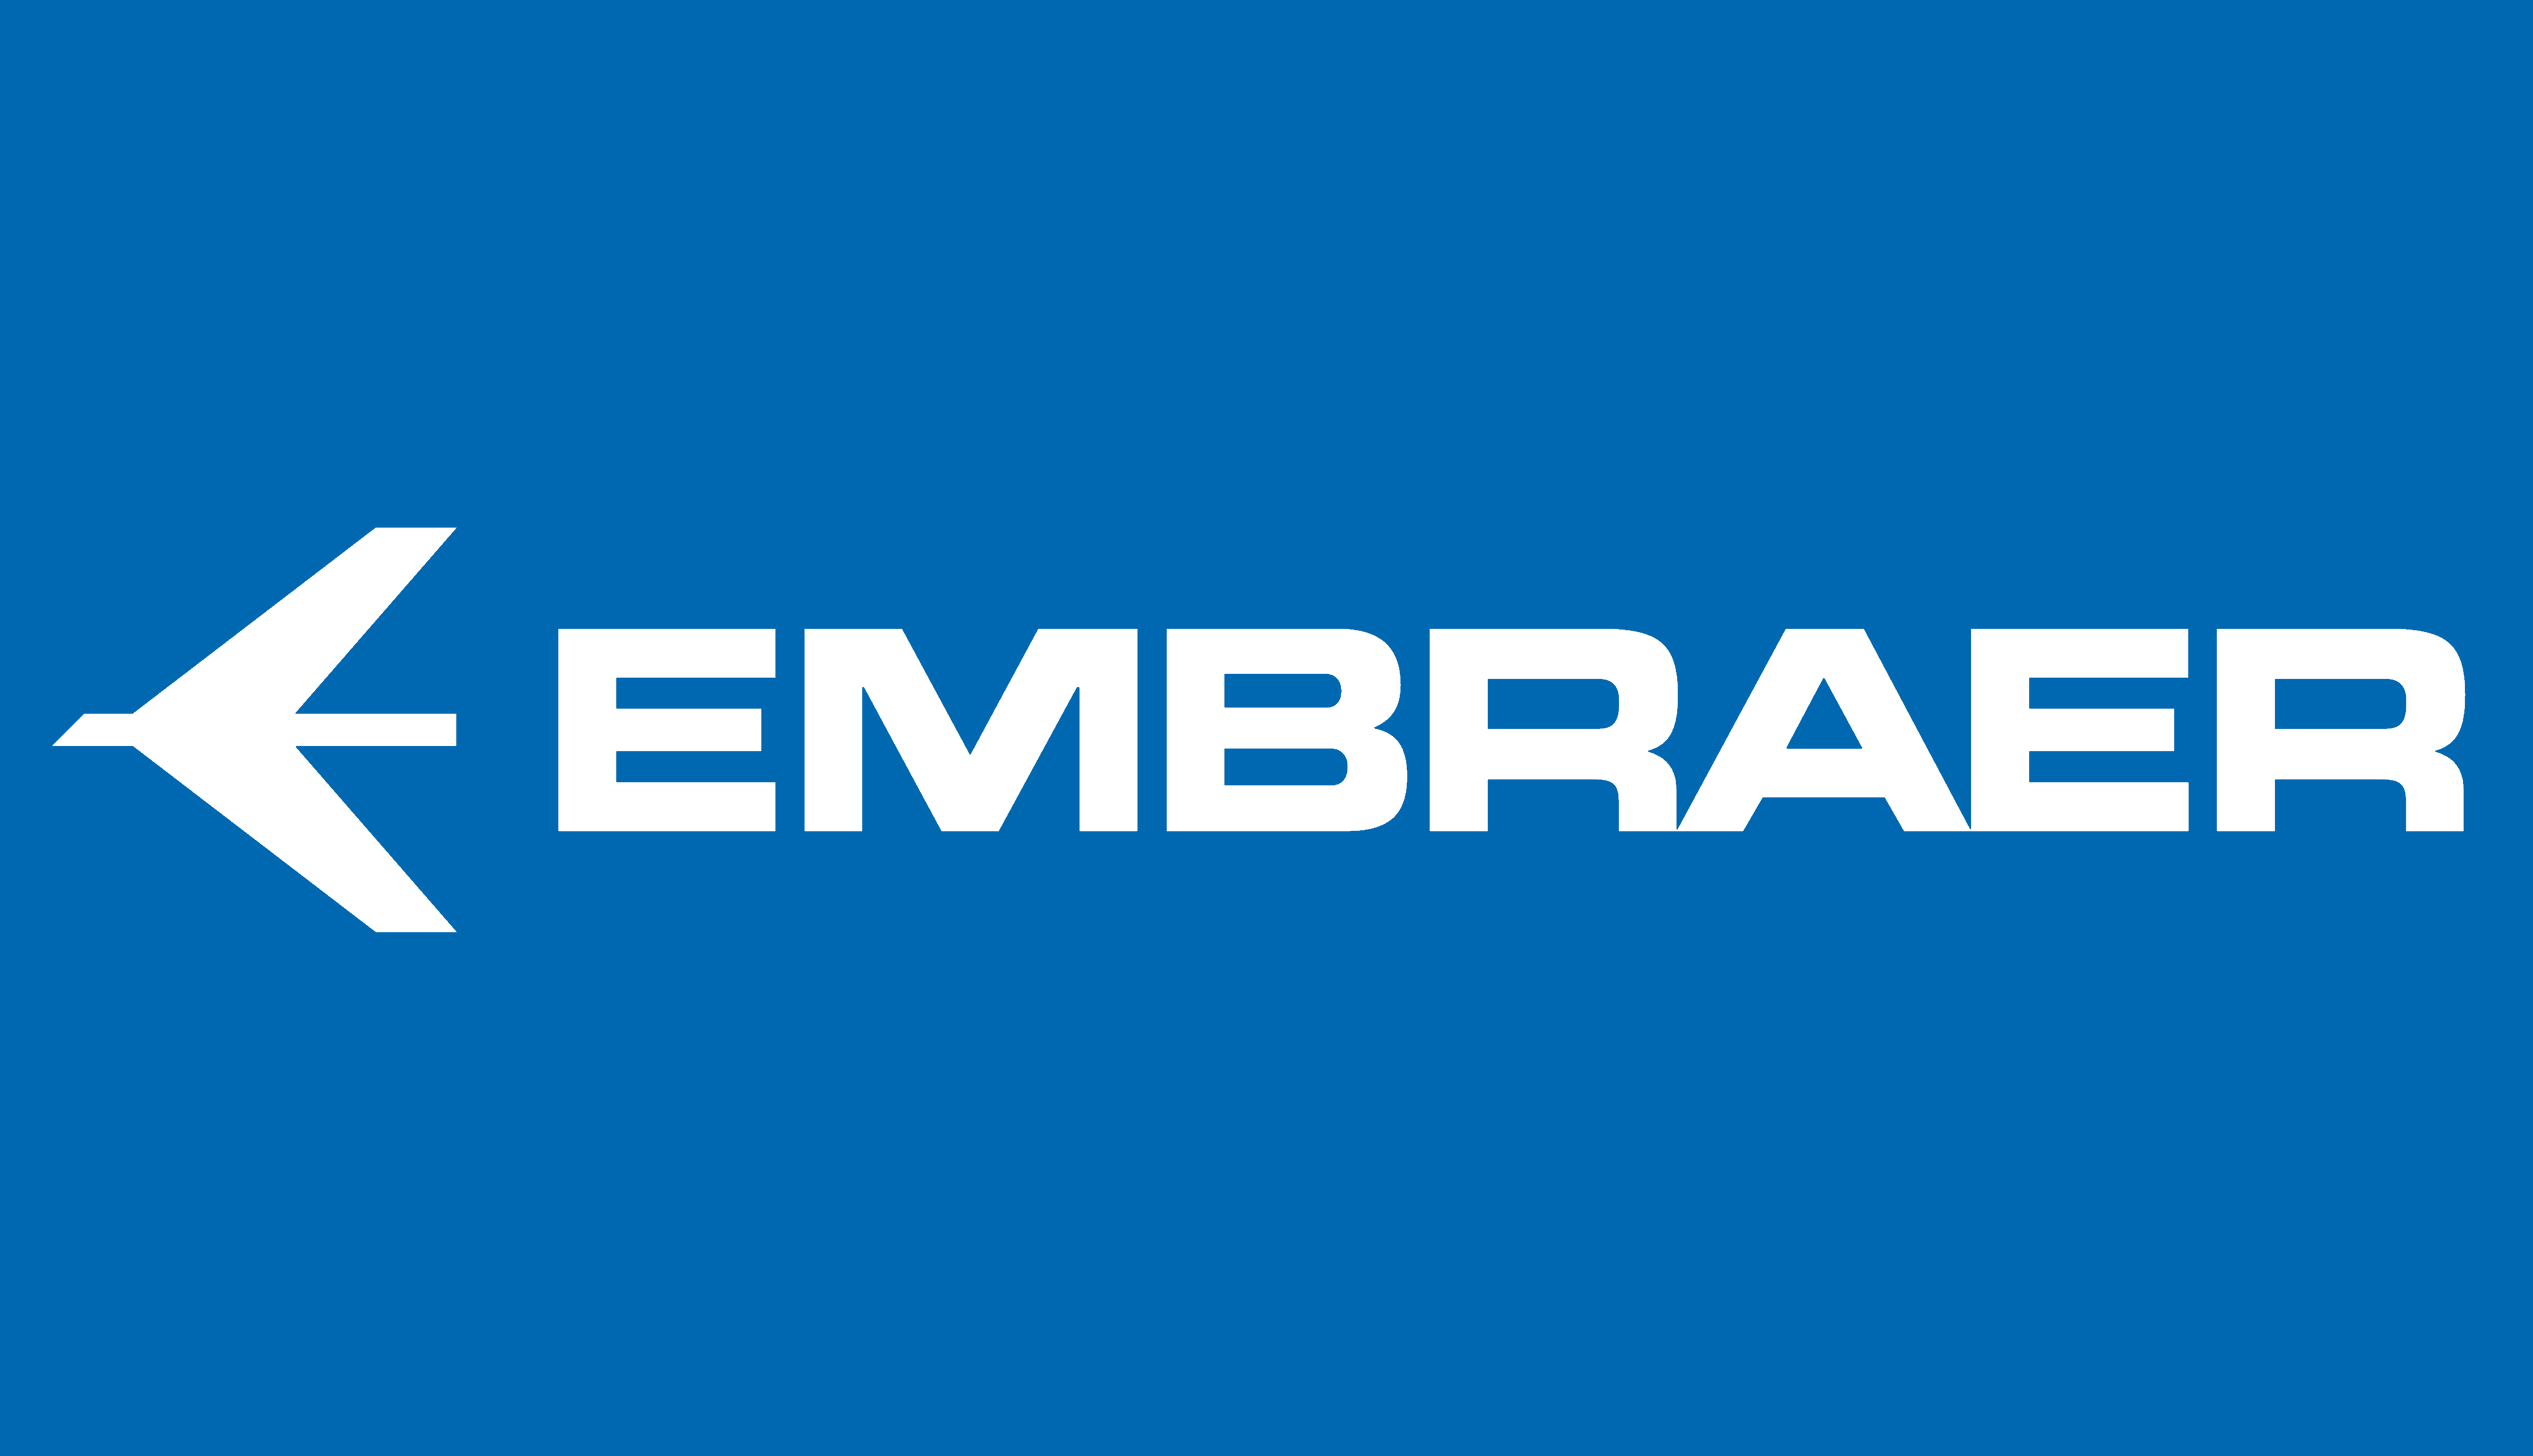 embraer logo logodownloadorg download de logotipos